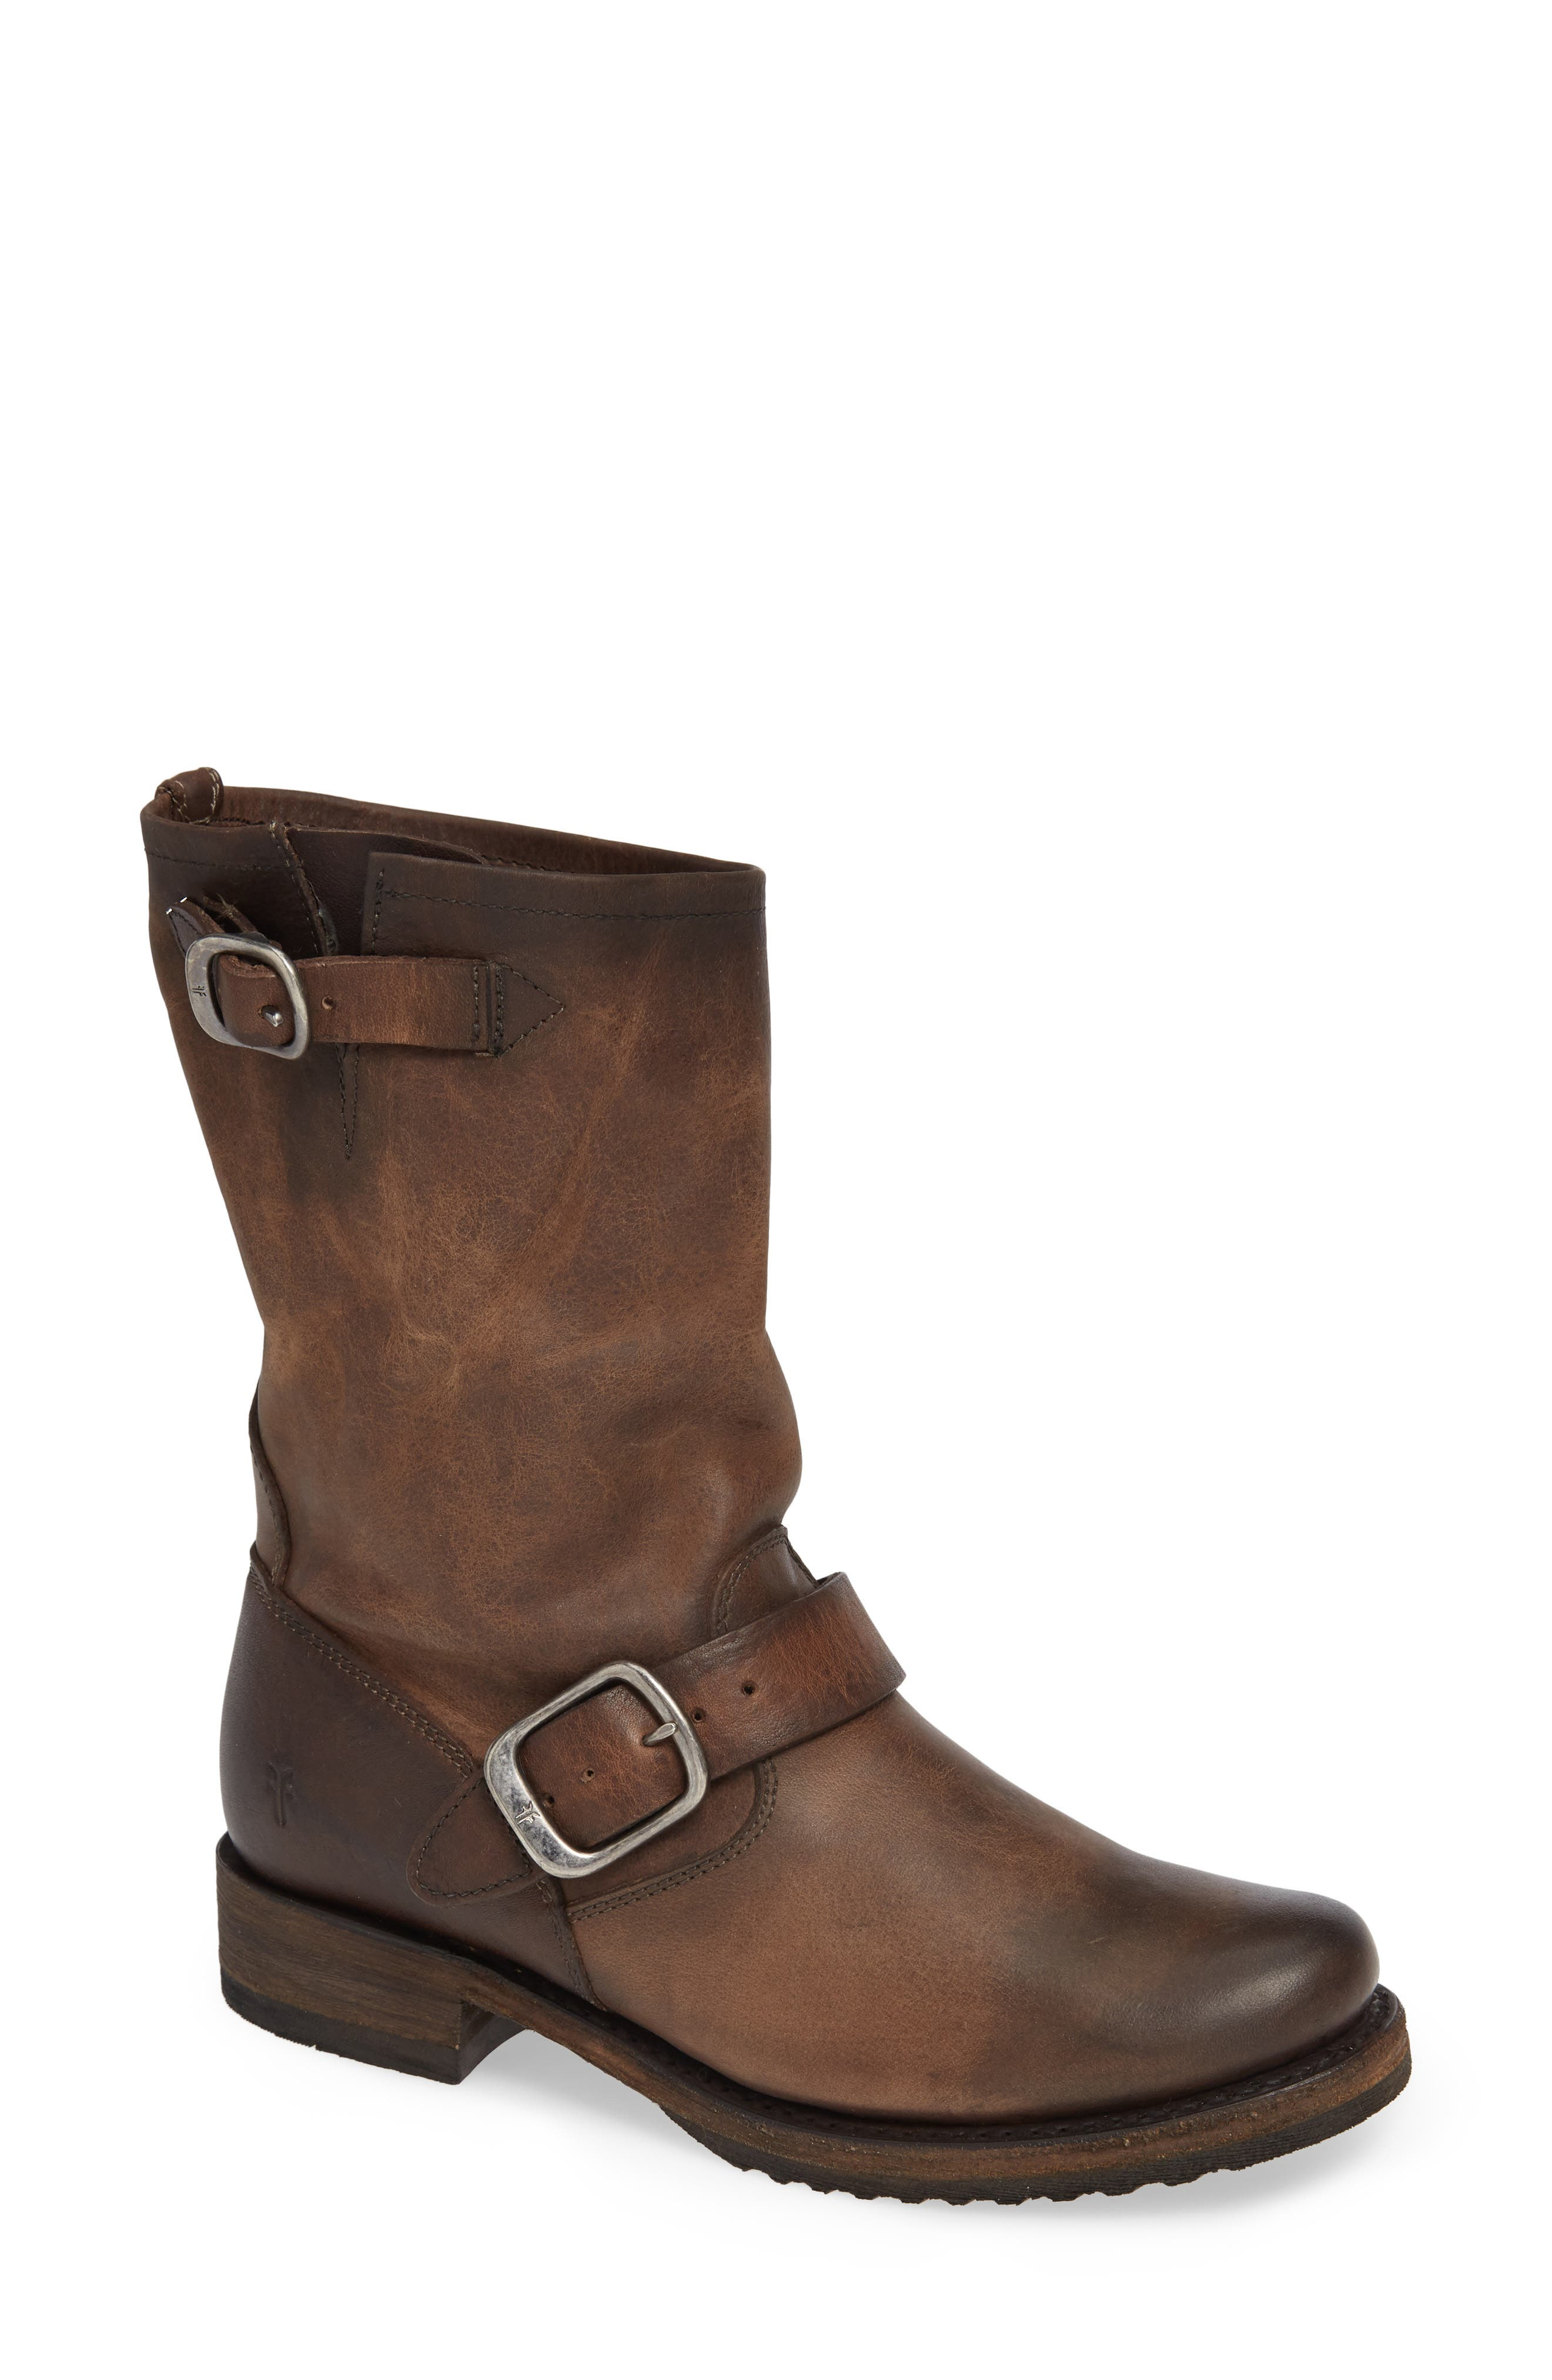 'Veronica' Short Boot,                         Main,                         color, BROWN LEATHER